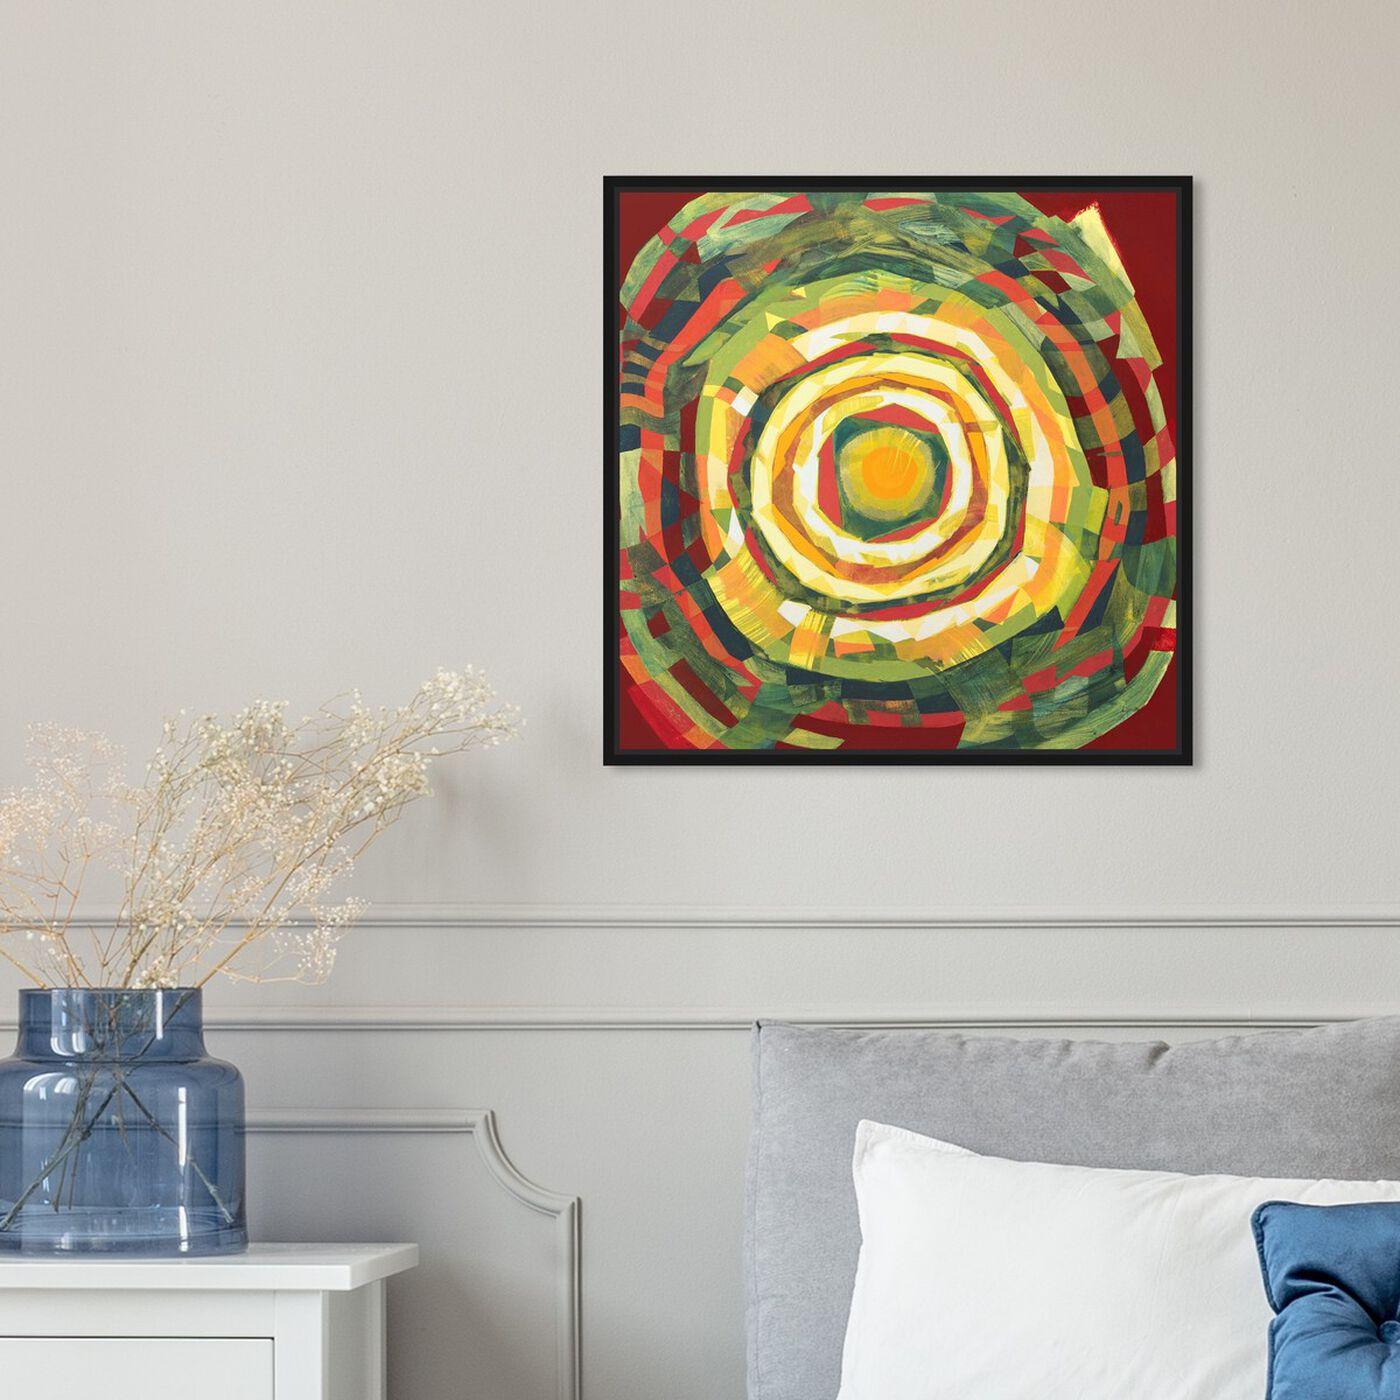 Hanging view of Sai - Pictis Spiralis Natura 1NM1139 featuring abstract and geometric art.